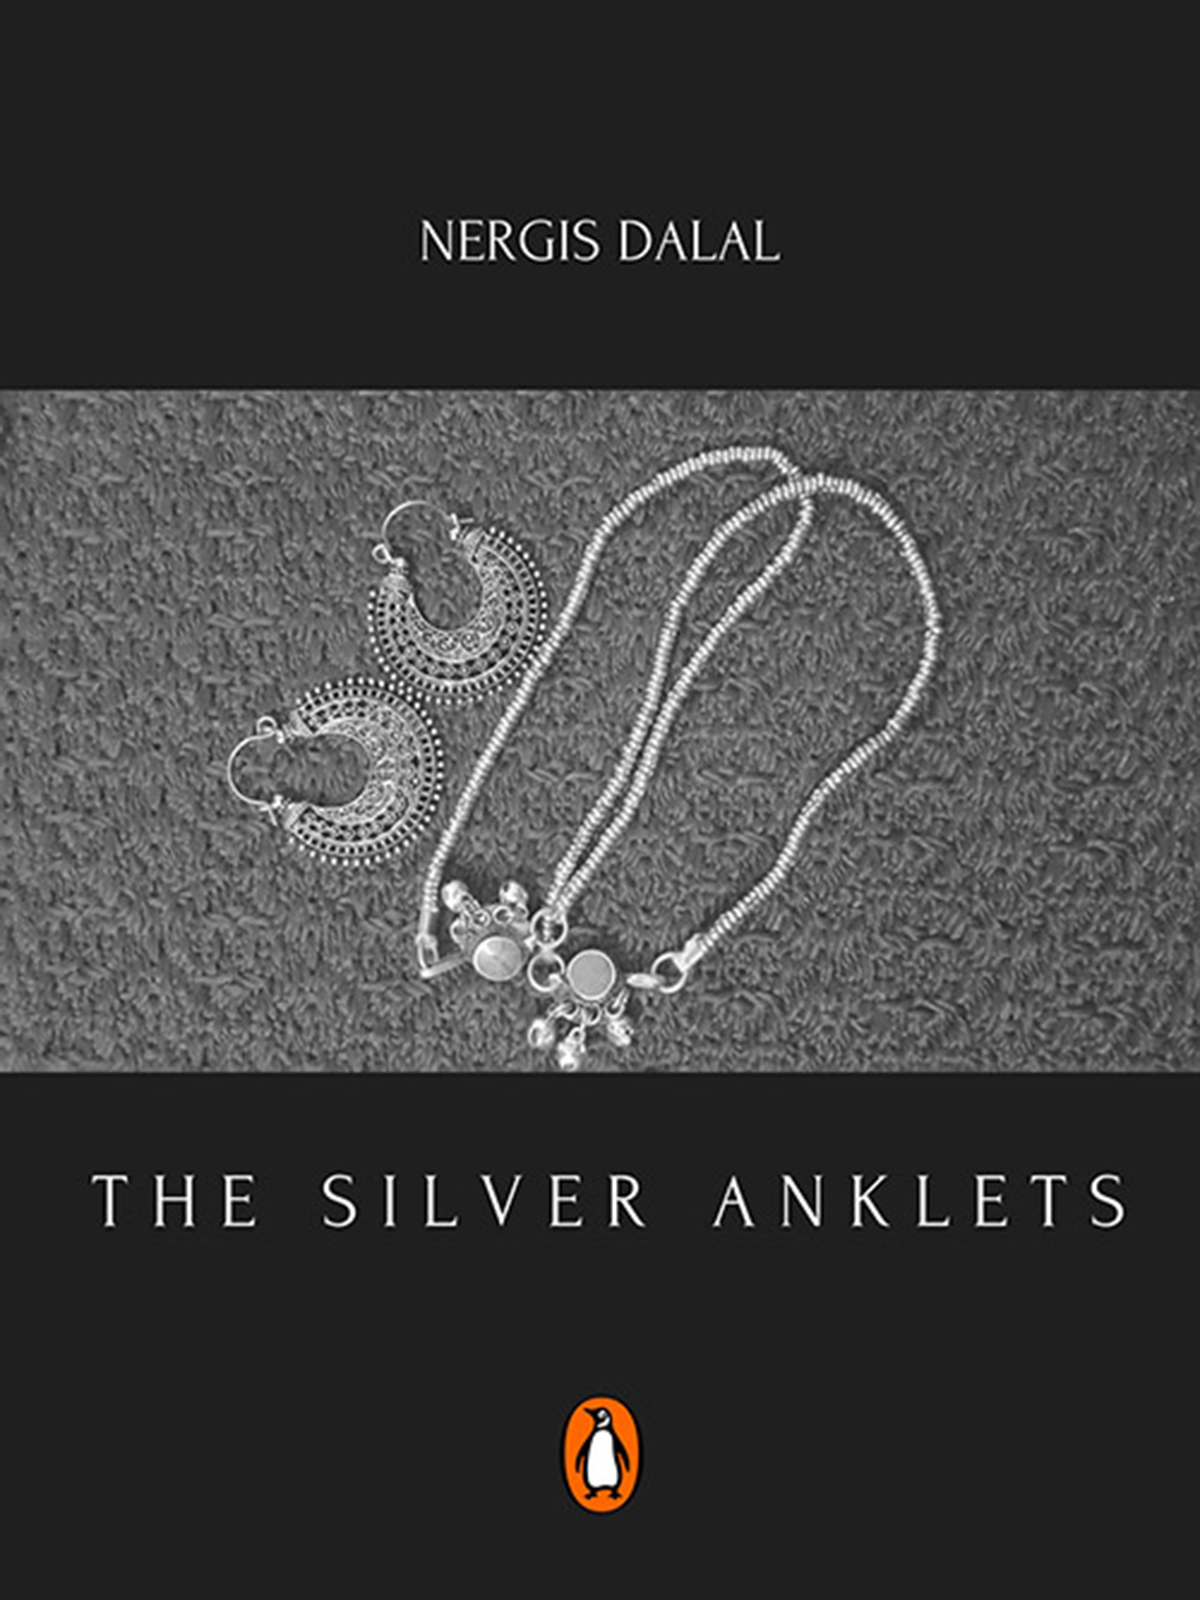 The Silver Anklets